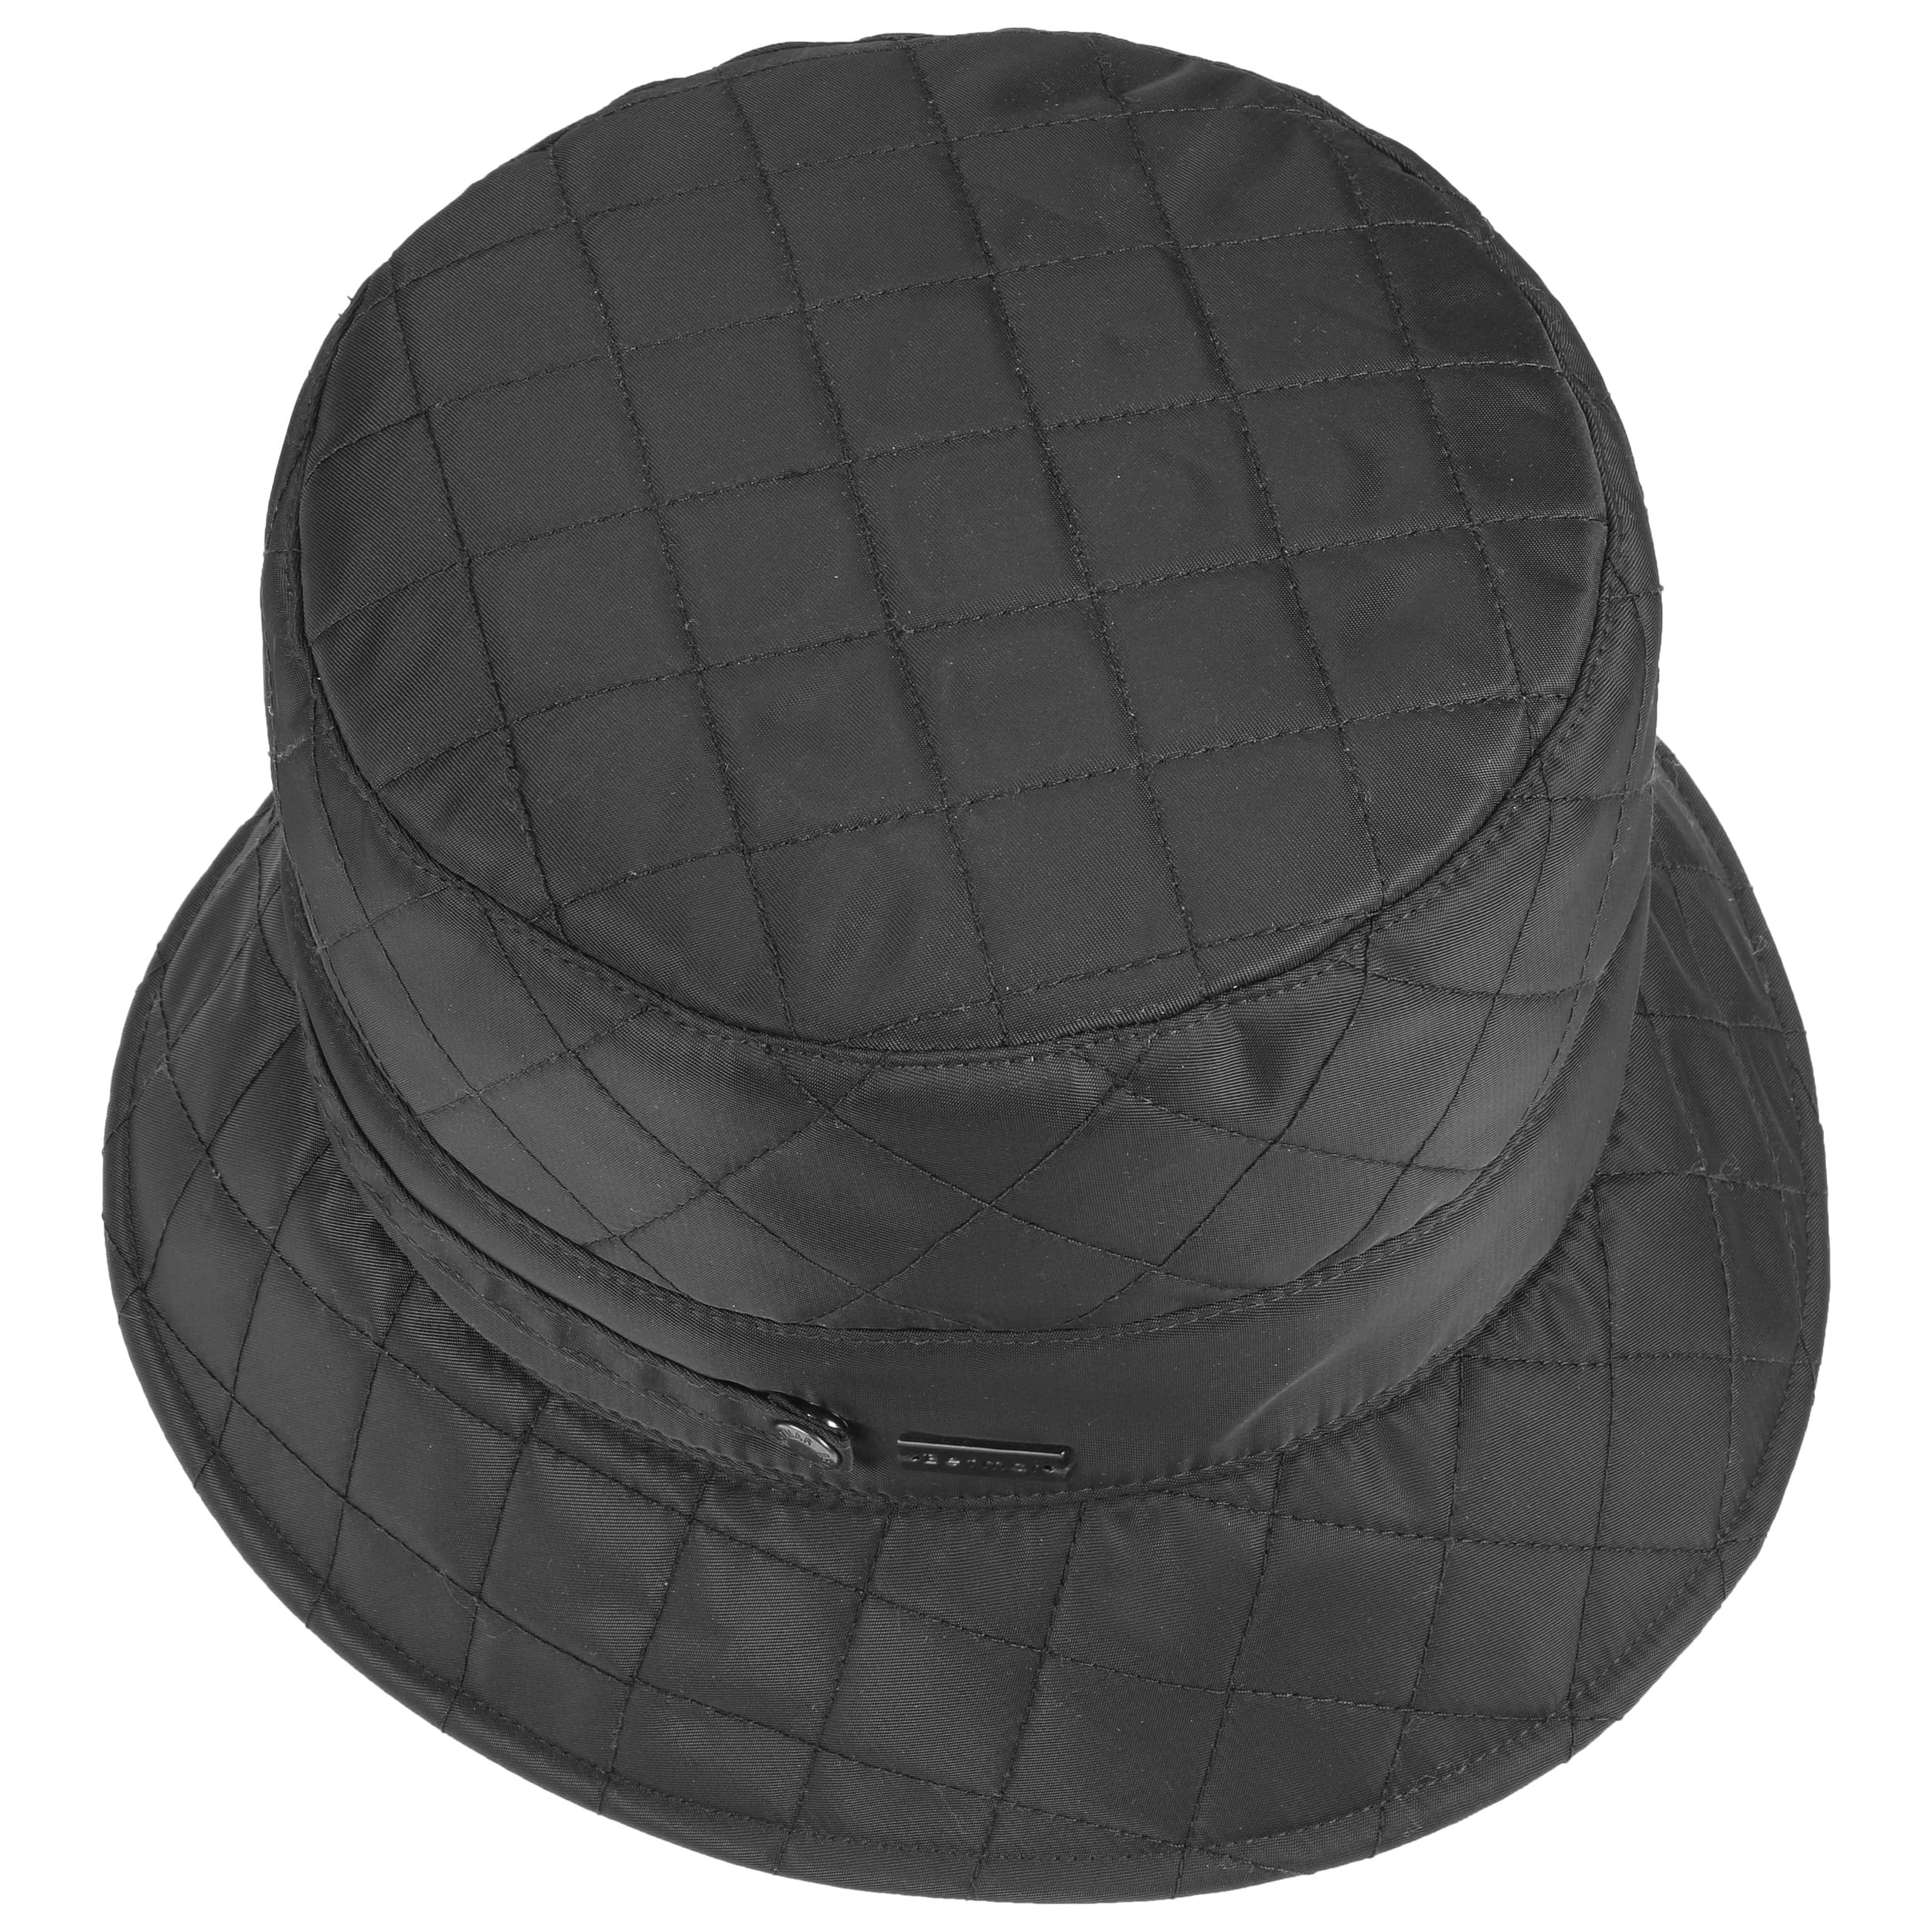 8a3ed3dc8ed55 ... Quilted Bucket Hat by Betmar - black 1 ...